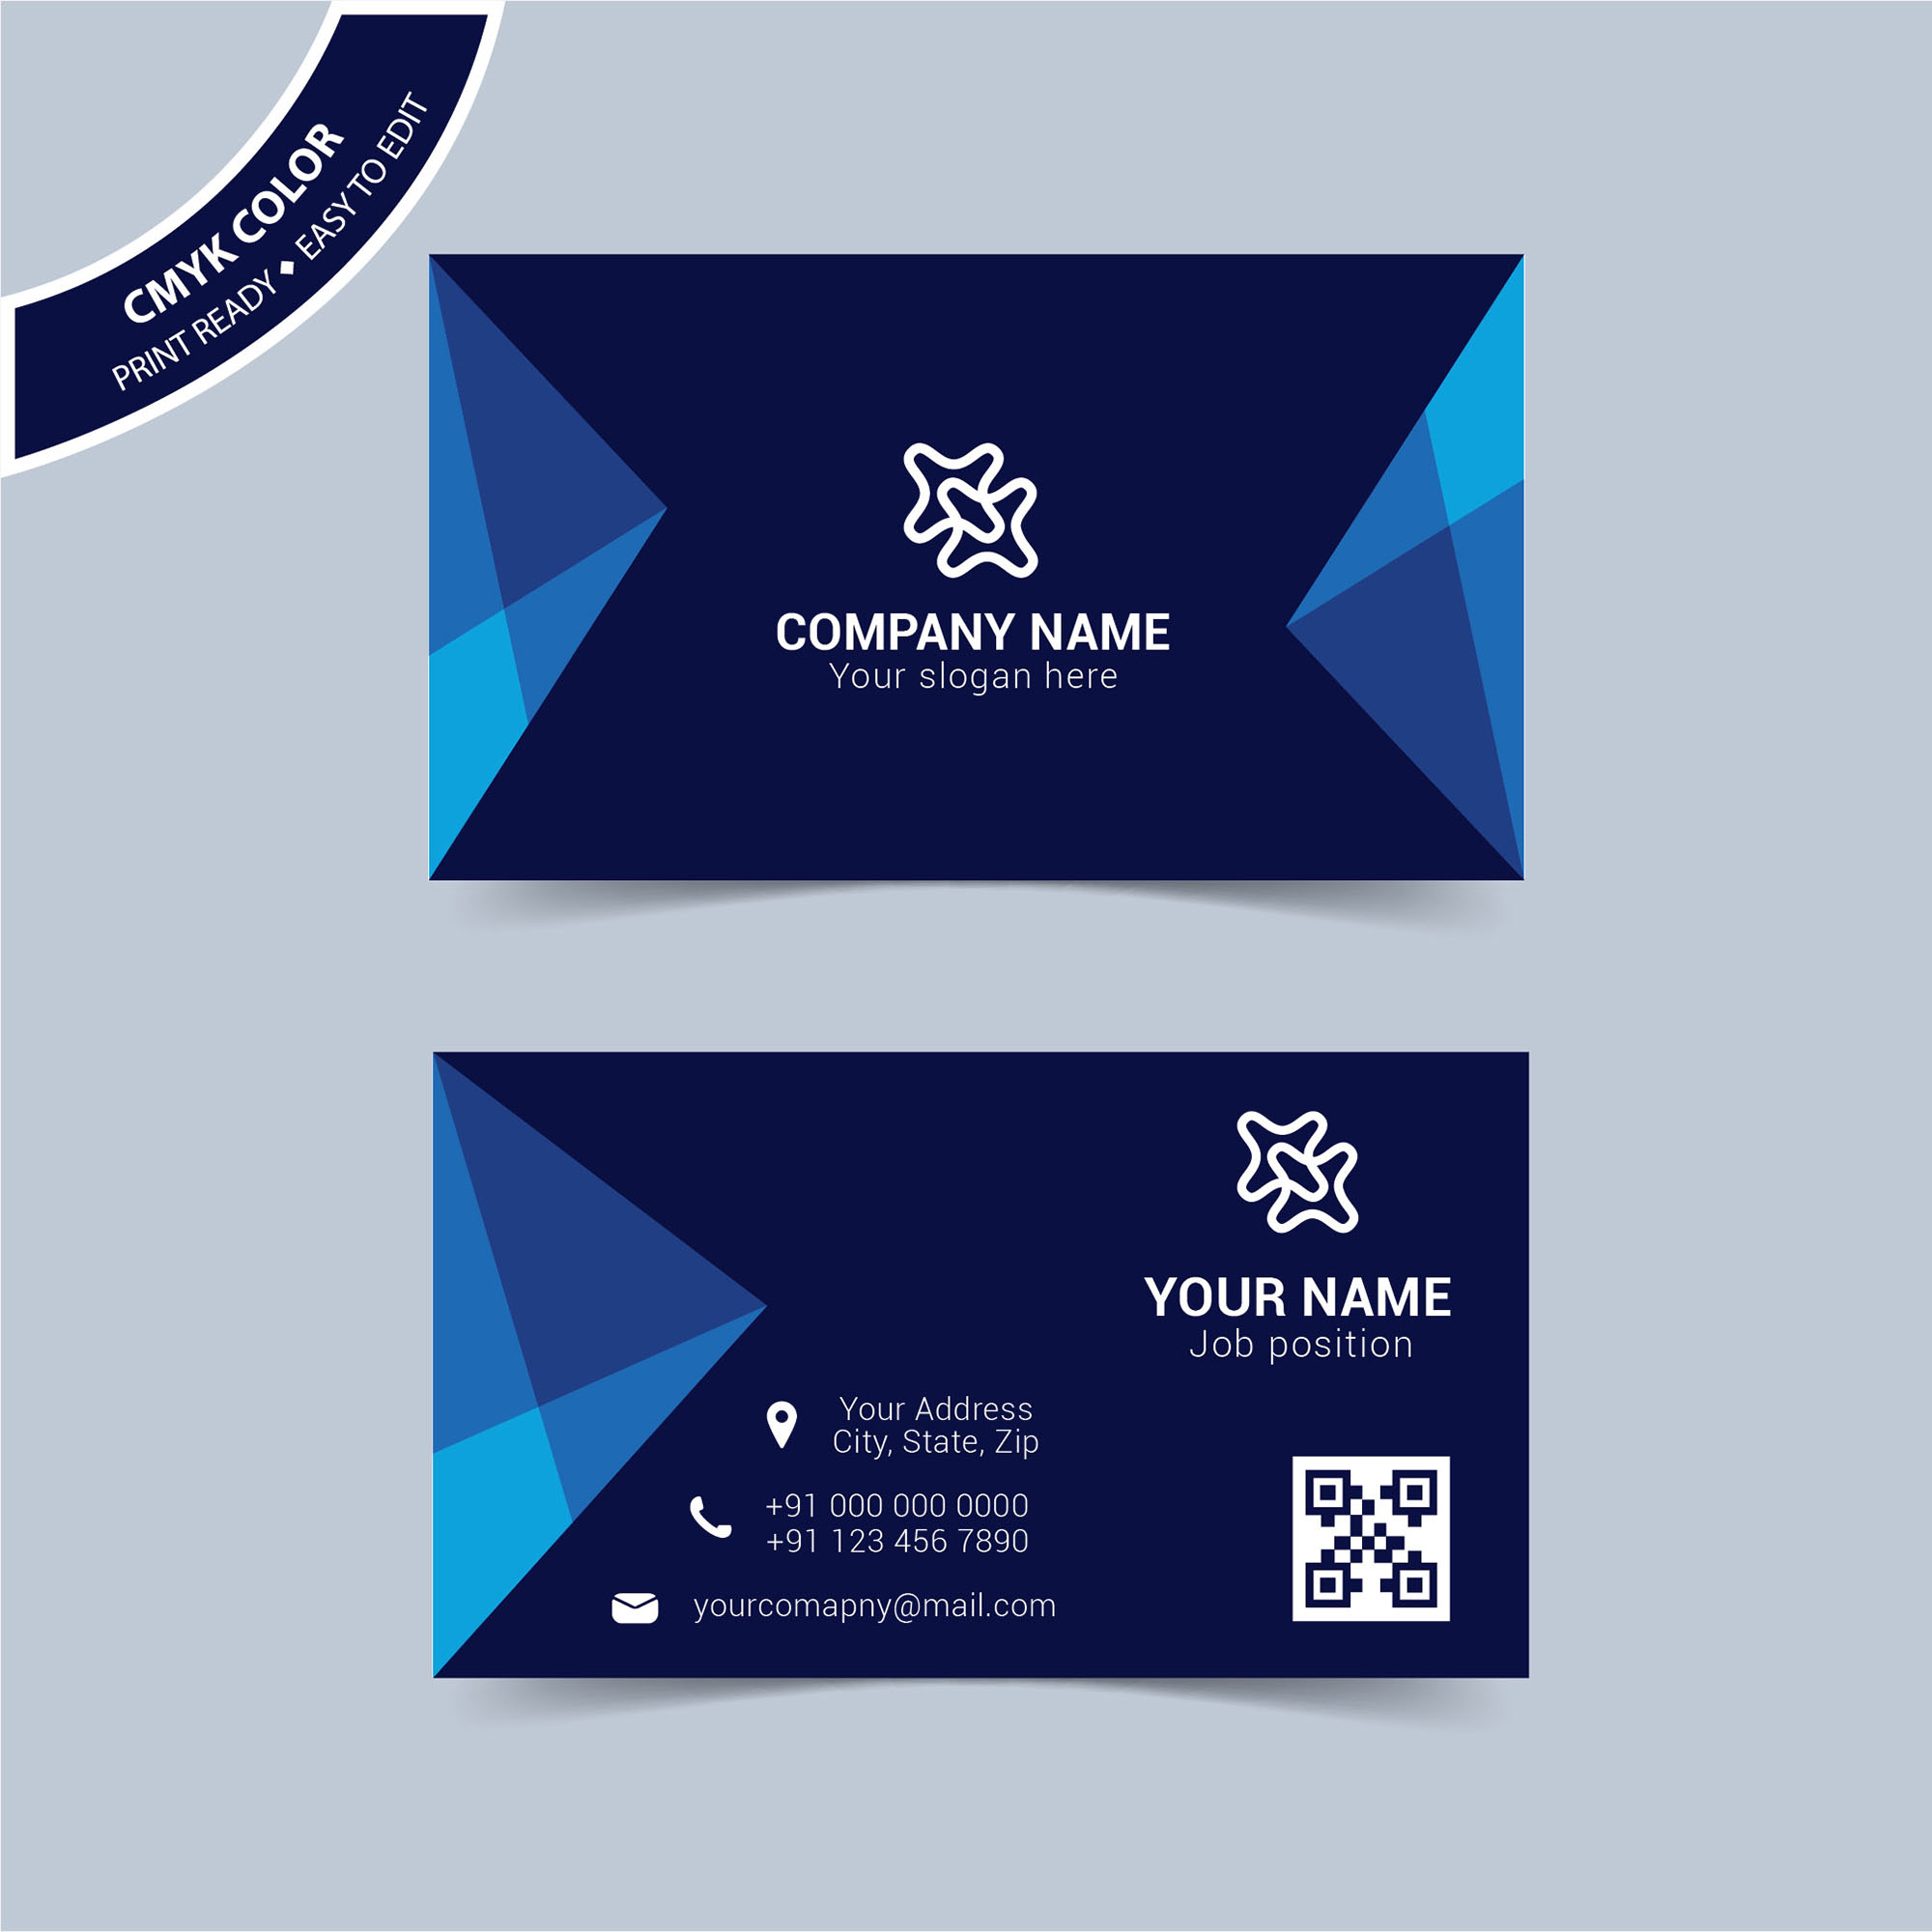 Modern blue business card template free download wisxi business card business cards business card design business card template design templates cheaphphosting